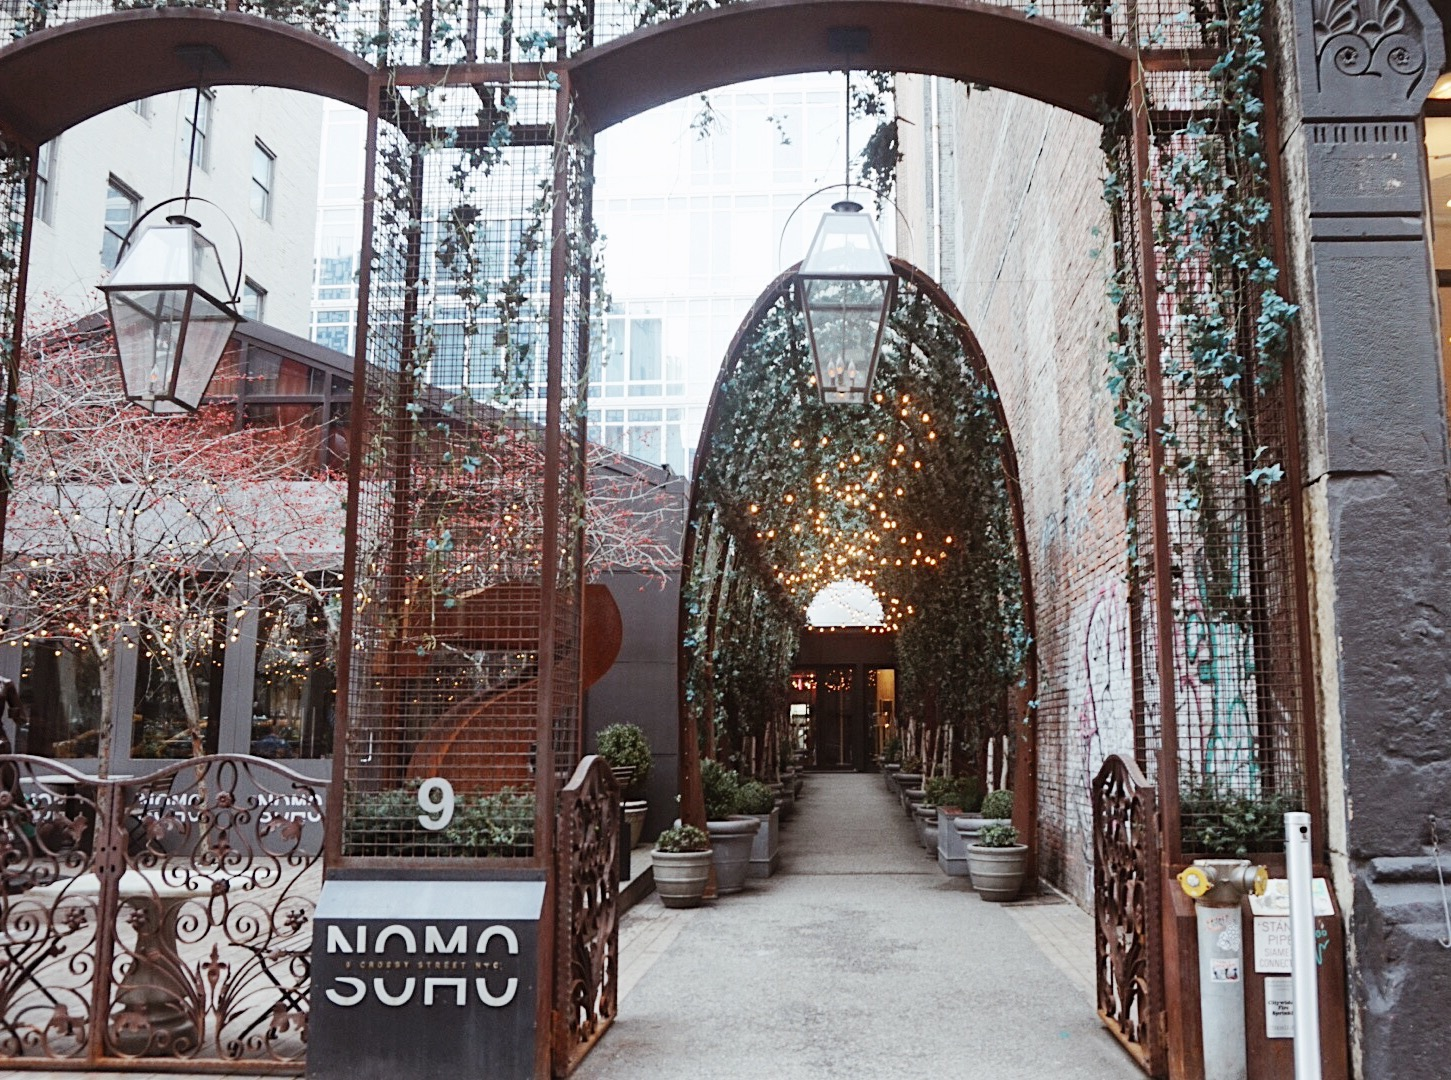 The green arch of the Nomo Soho in New York City